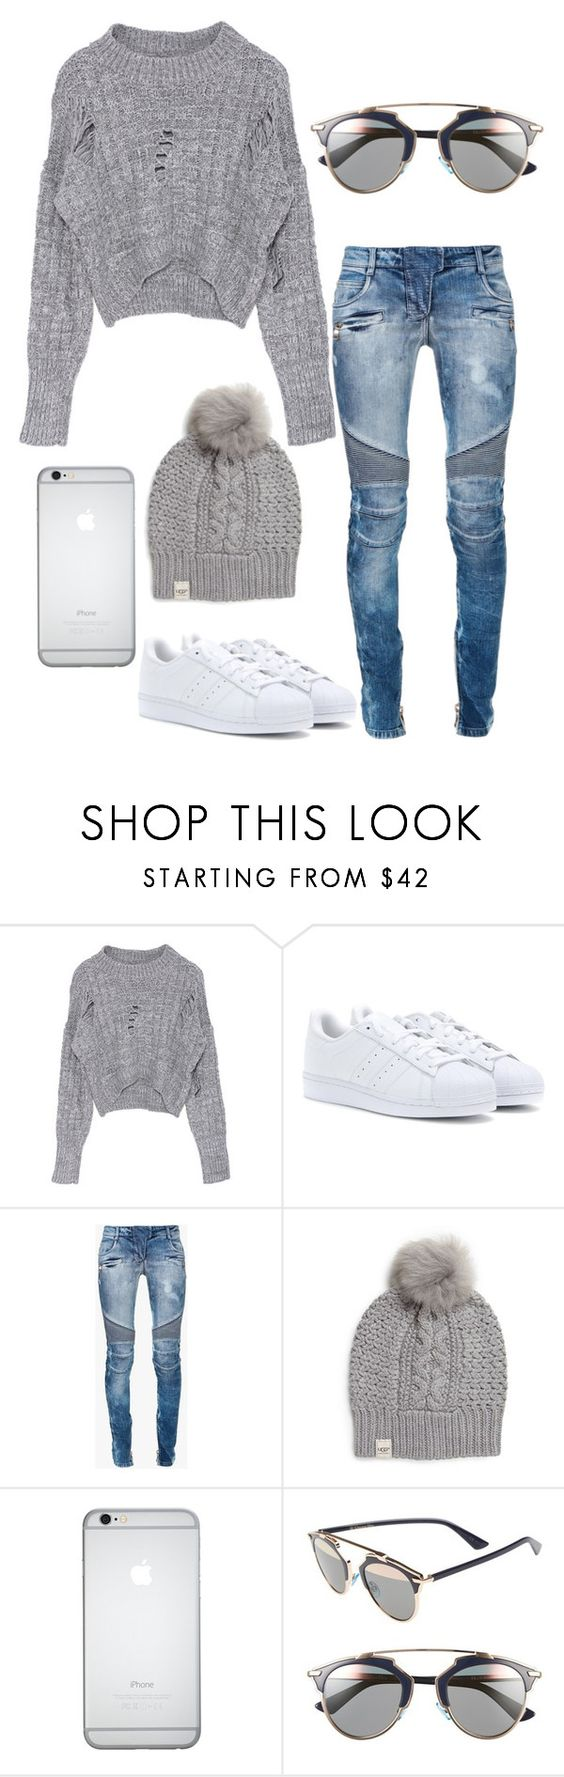 """Untitled #266"" by rayame ❤ liked on Polyvore featuring adidas, Balmain, UGG Australia and Christian Dior"